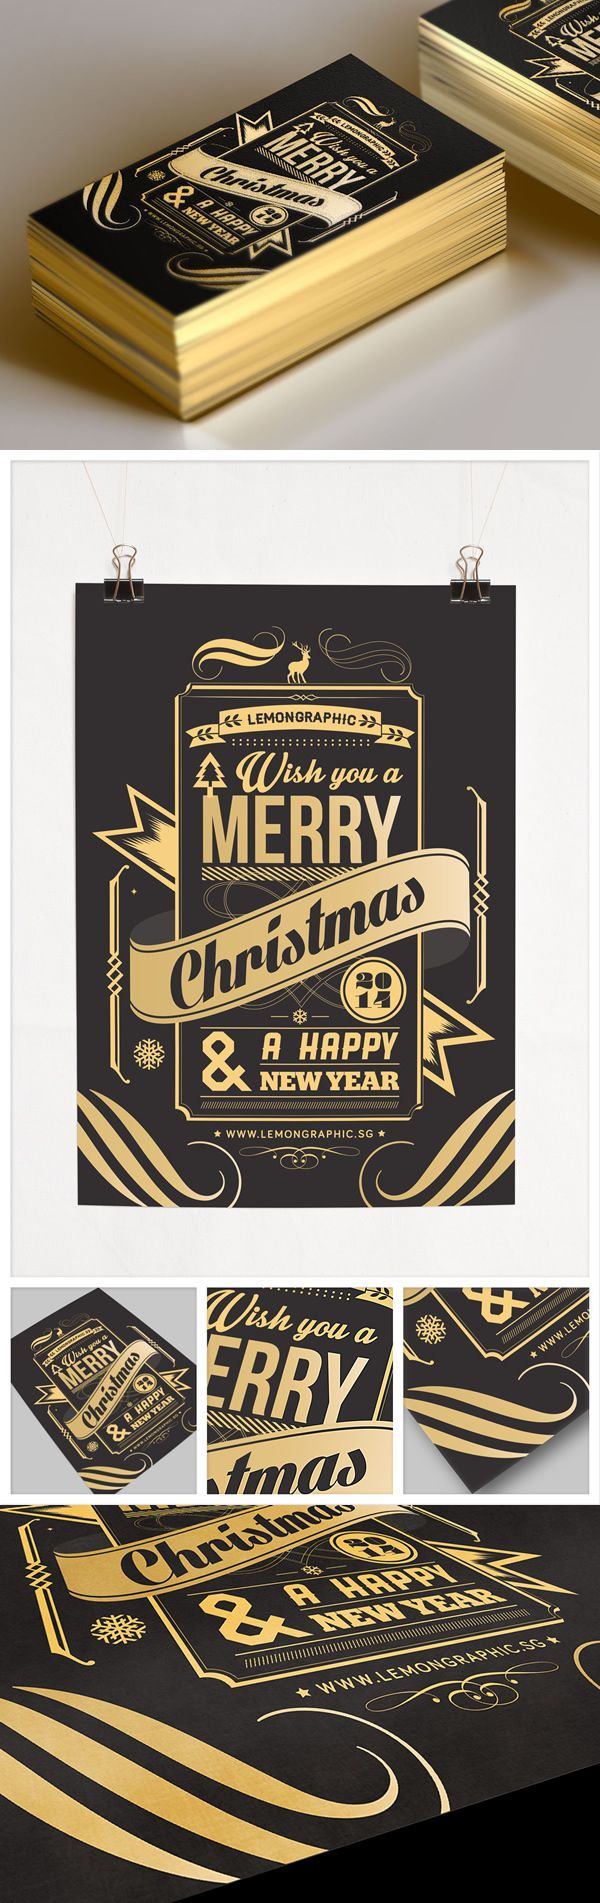 15 best poster hollidays images on Pinterest | Christmas ideas ...